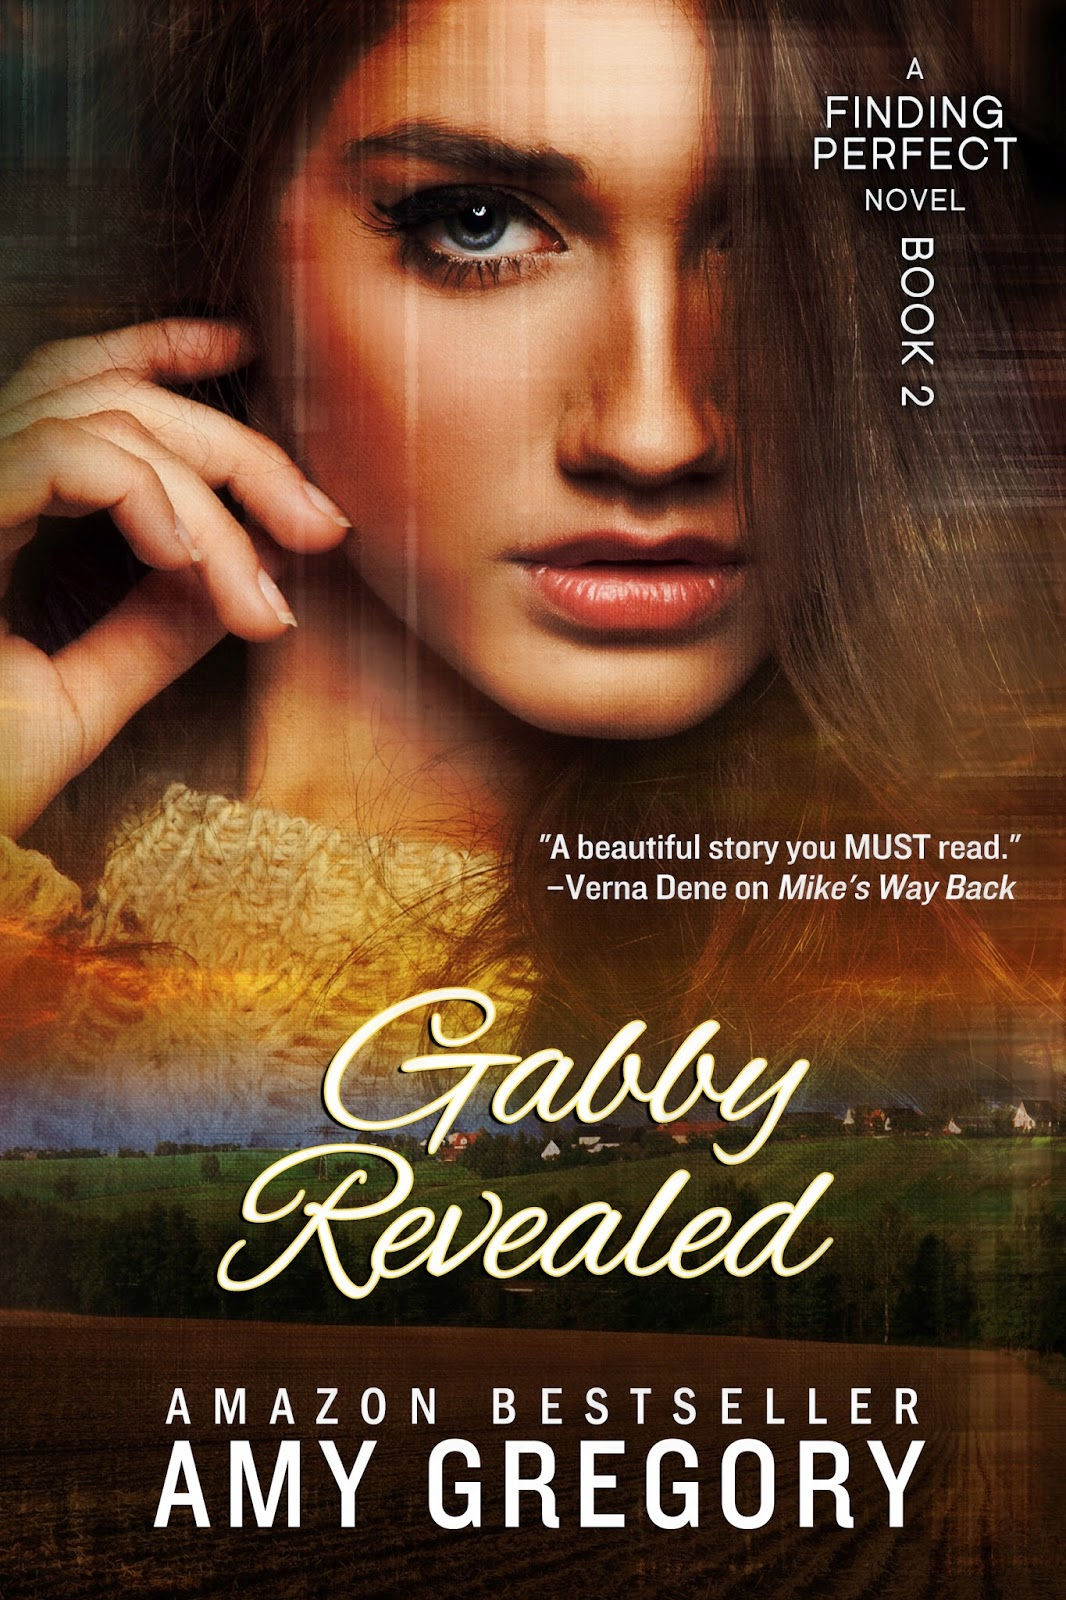 http://clevergirlsread.blogspot.com/2014/03/blog-tour-review-giveaway-gabby.html